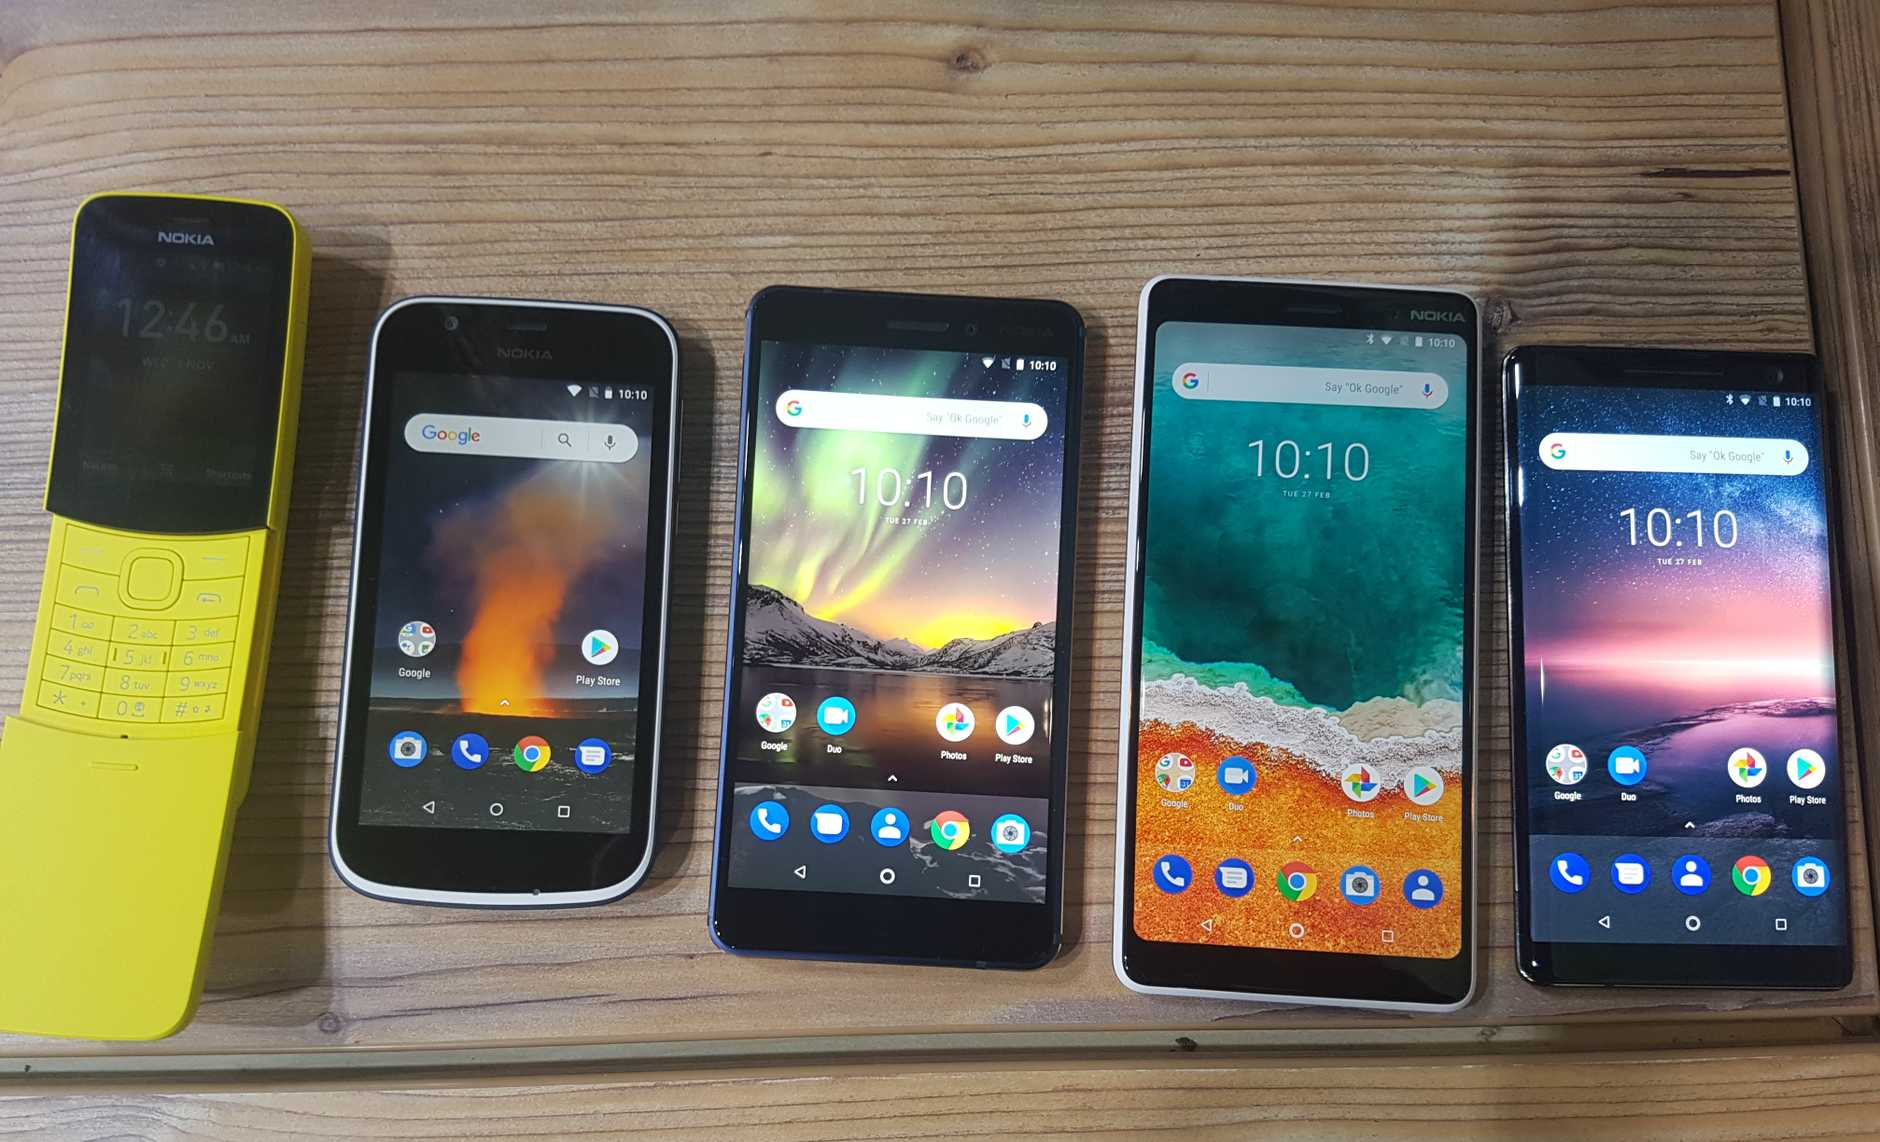 The five devices launched by Nokia at Mobile World Congress - the reloaded Nokia 8110, the Nokia 1, Nokia 6, Nokia 7+ and Nokia 8 Sirocco.